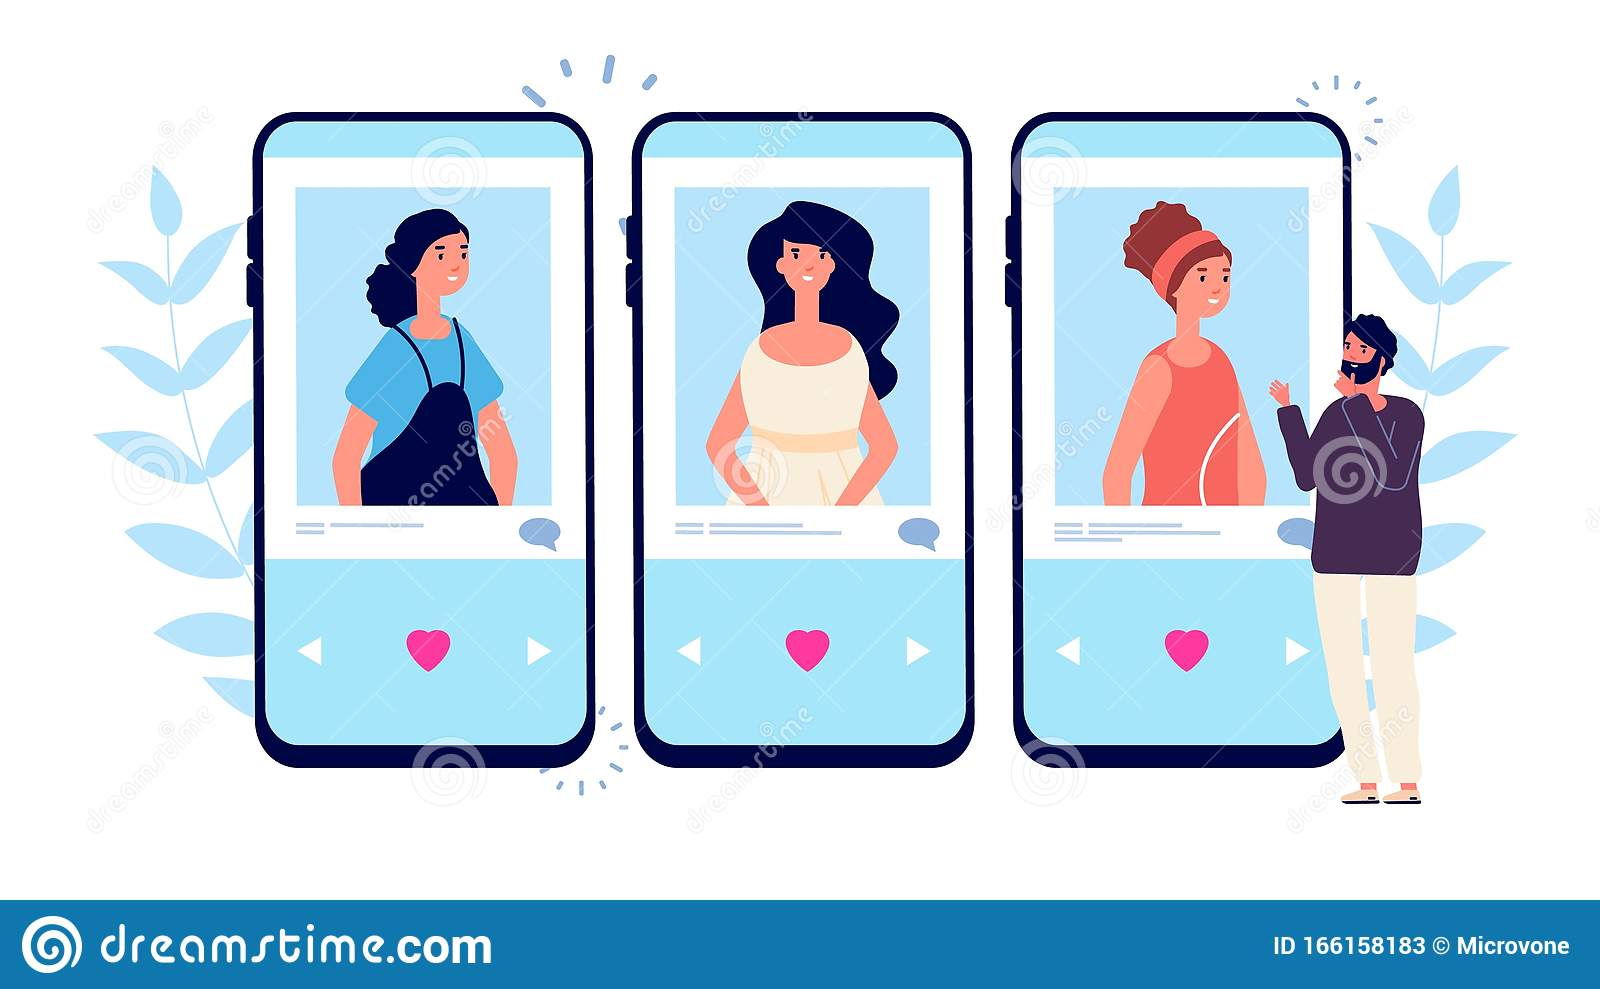 new age dating sites